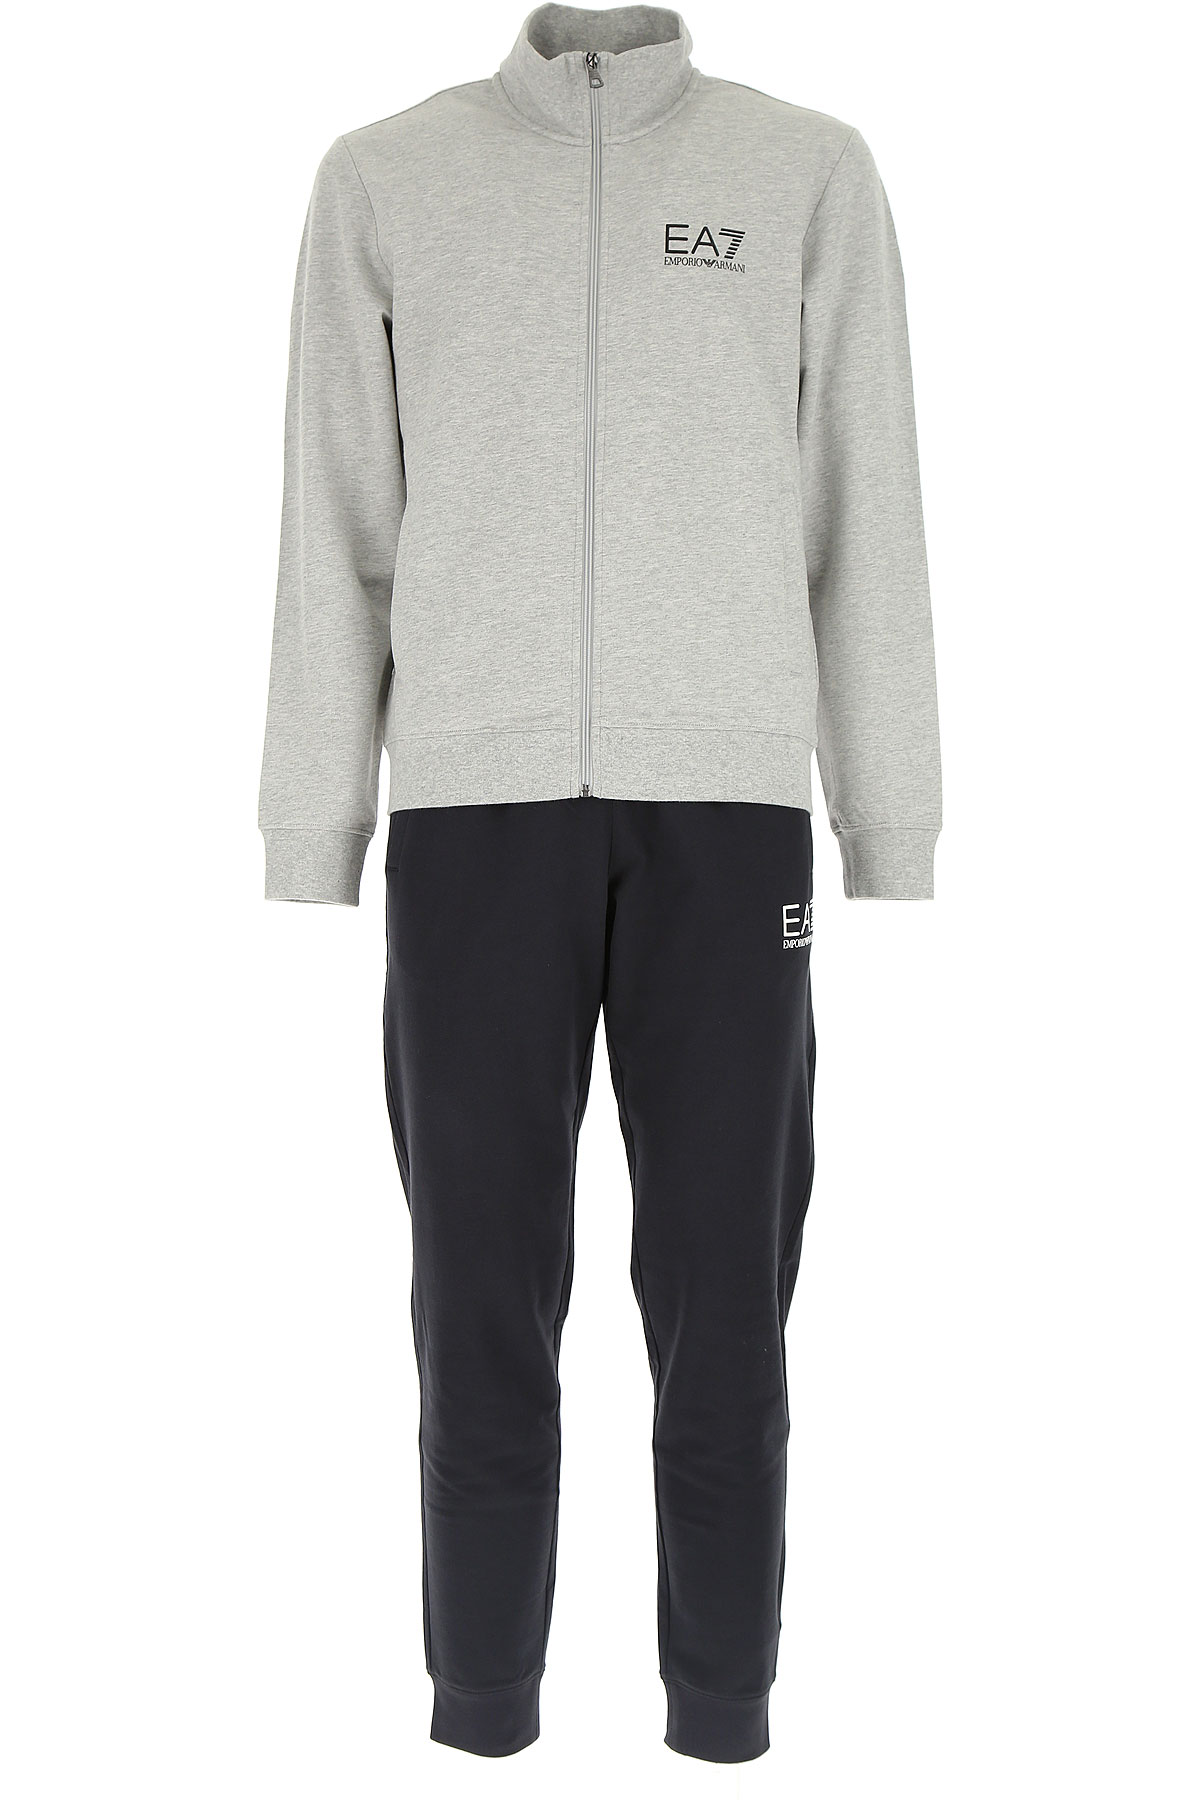 Emporio Armani Men\'s Sportswear for Gym Workouts and Running On Sale, Light Grey Melange, Cotton, 2017, L XL USA-452652